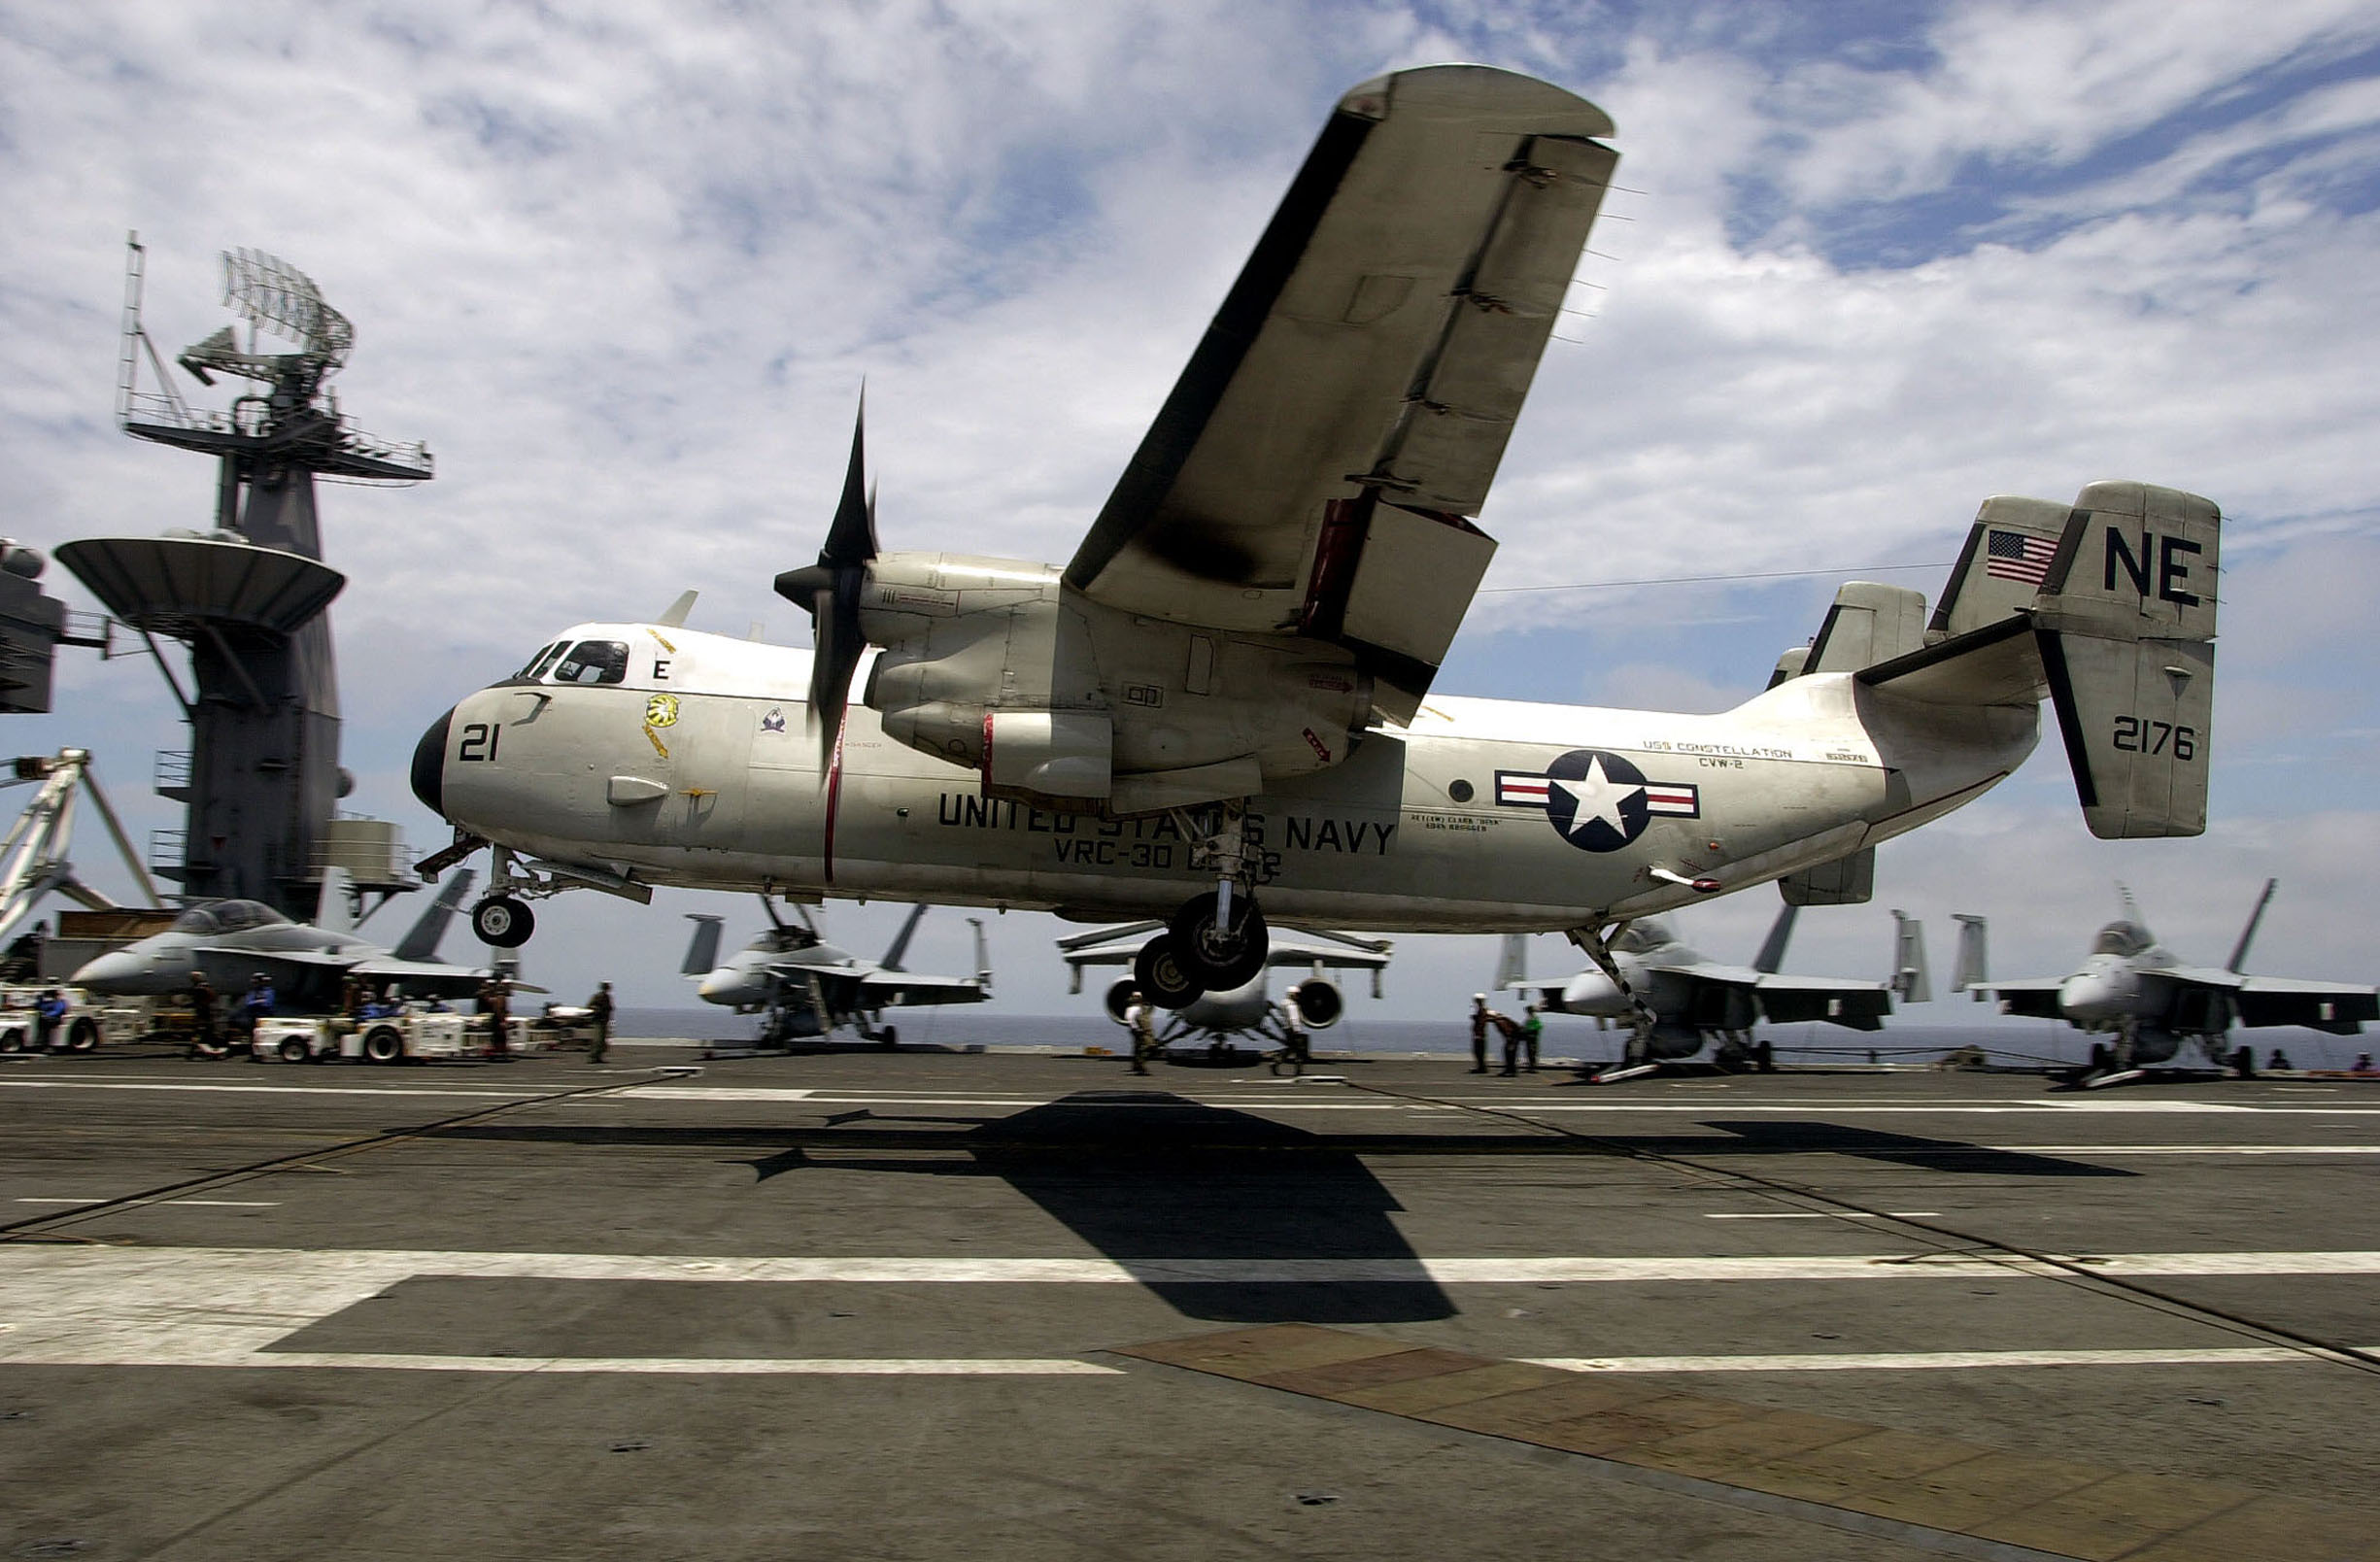 A C-2 Greyhound Makes An Arrested Landing On The Flight Deck ...